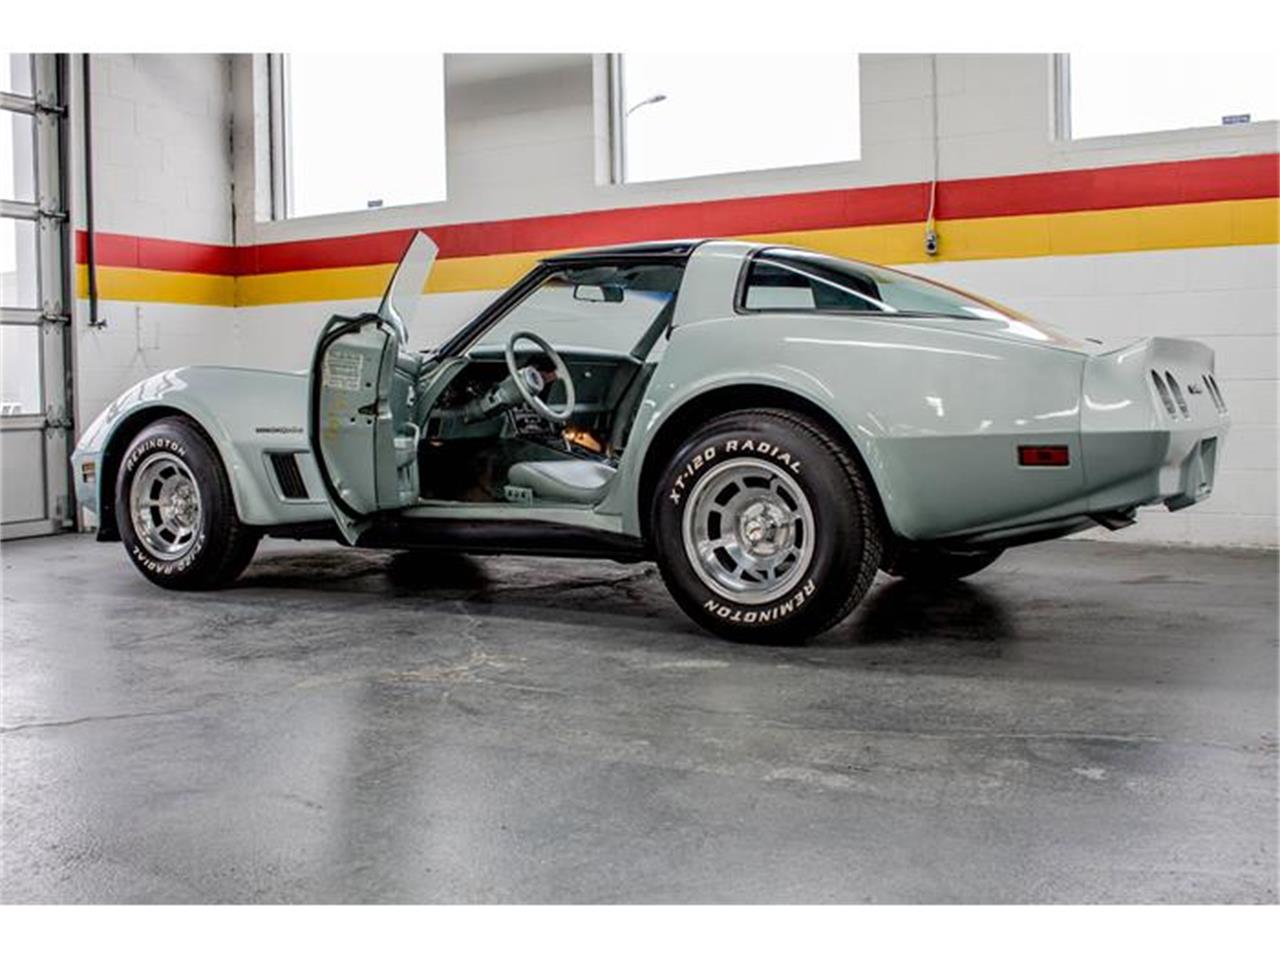 Large Picture of '82 Chevrolet Corvette located in Quebec - $24,900.00 Offered by John Scotti Classic Cars - GE2L